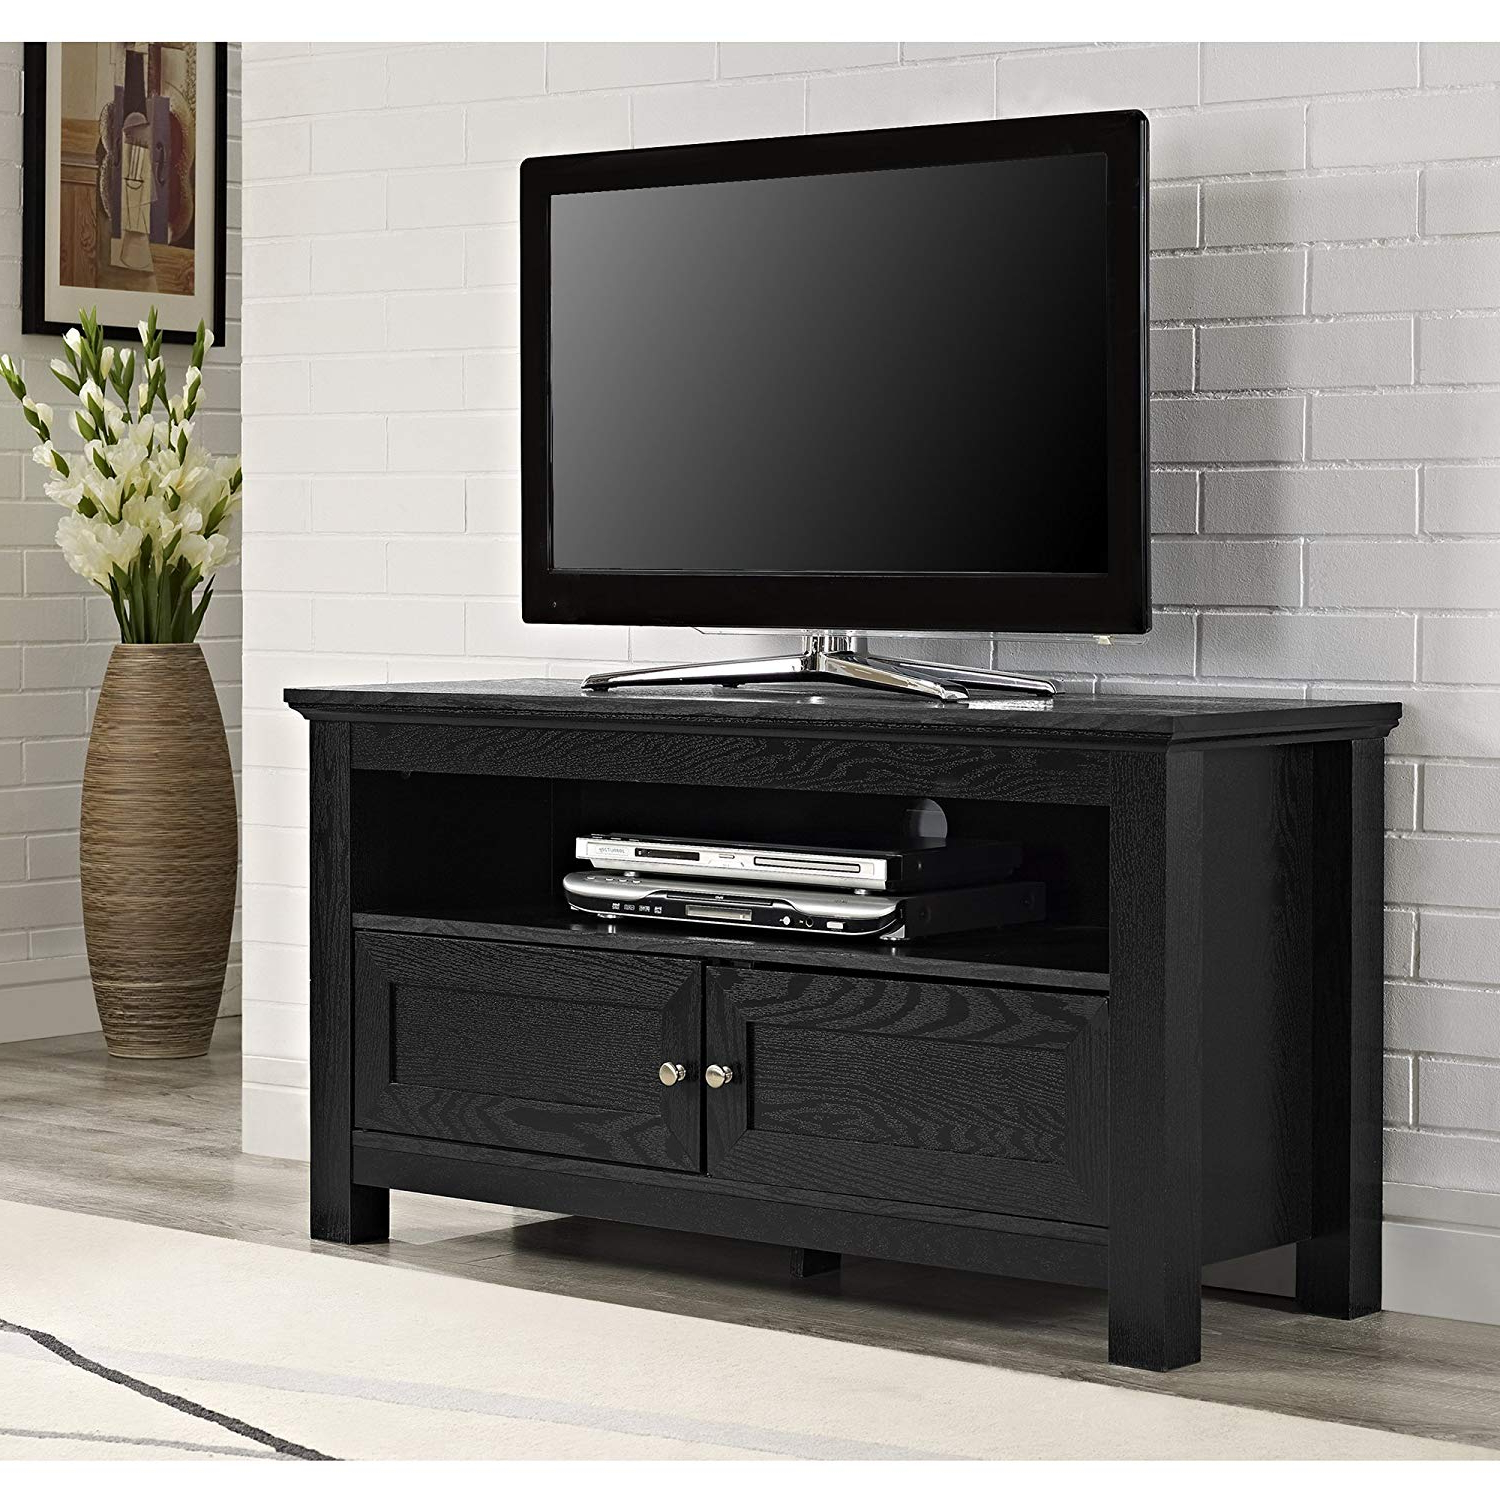 Dark Wood Tv Stands Throughout Famous Amazon: Walker Edison 44 Inches Cortez Tv Stand Console, Black (View 7 of 20)